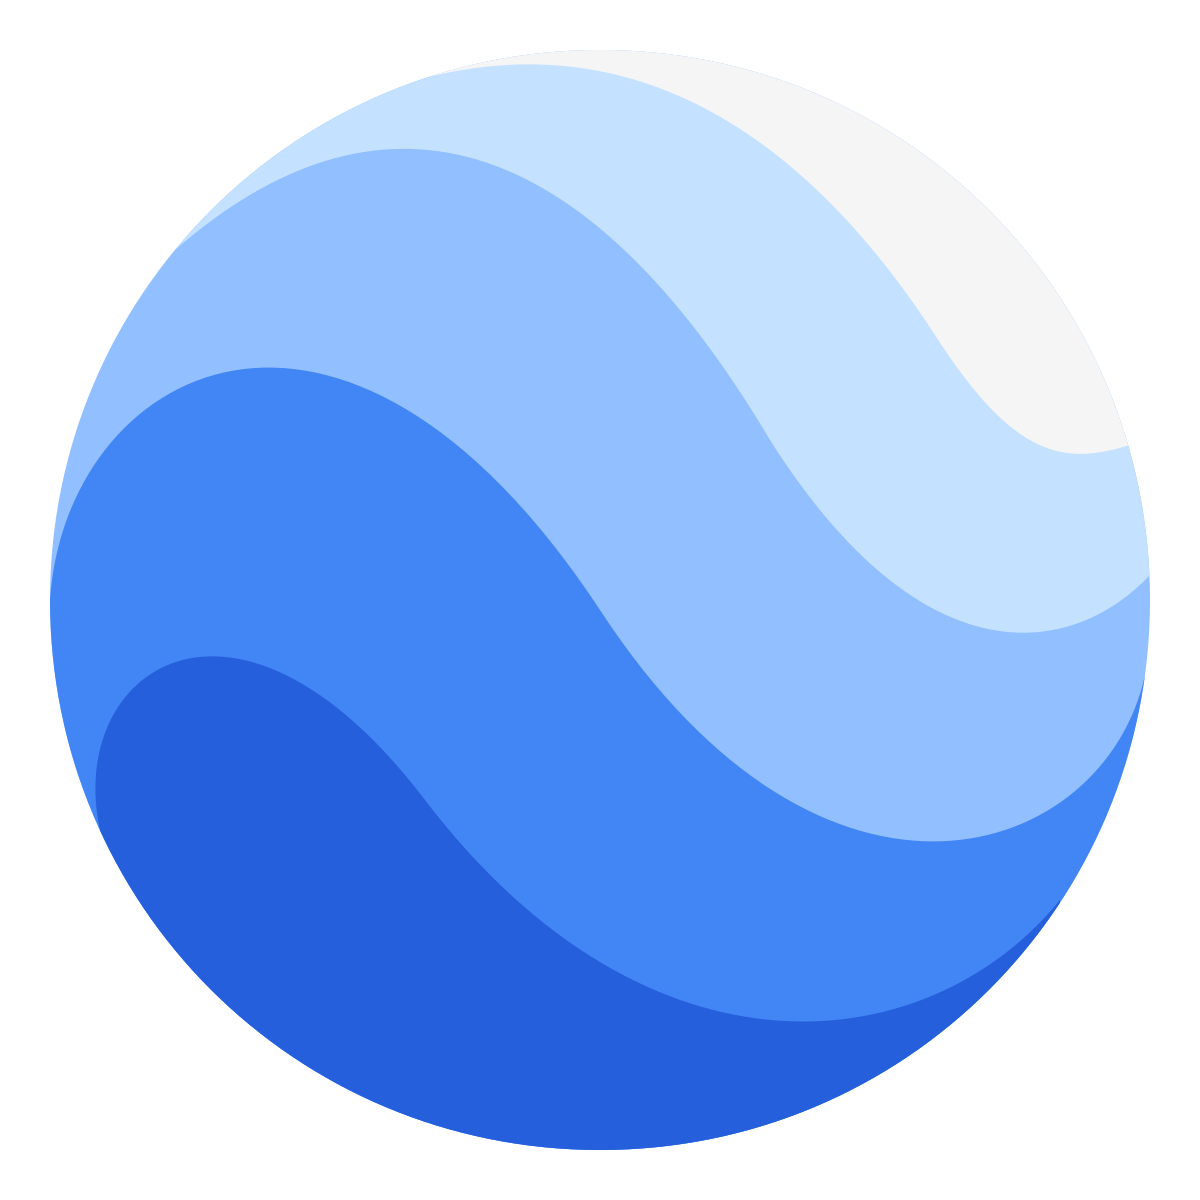 planet svg water paint